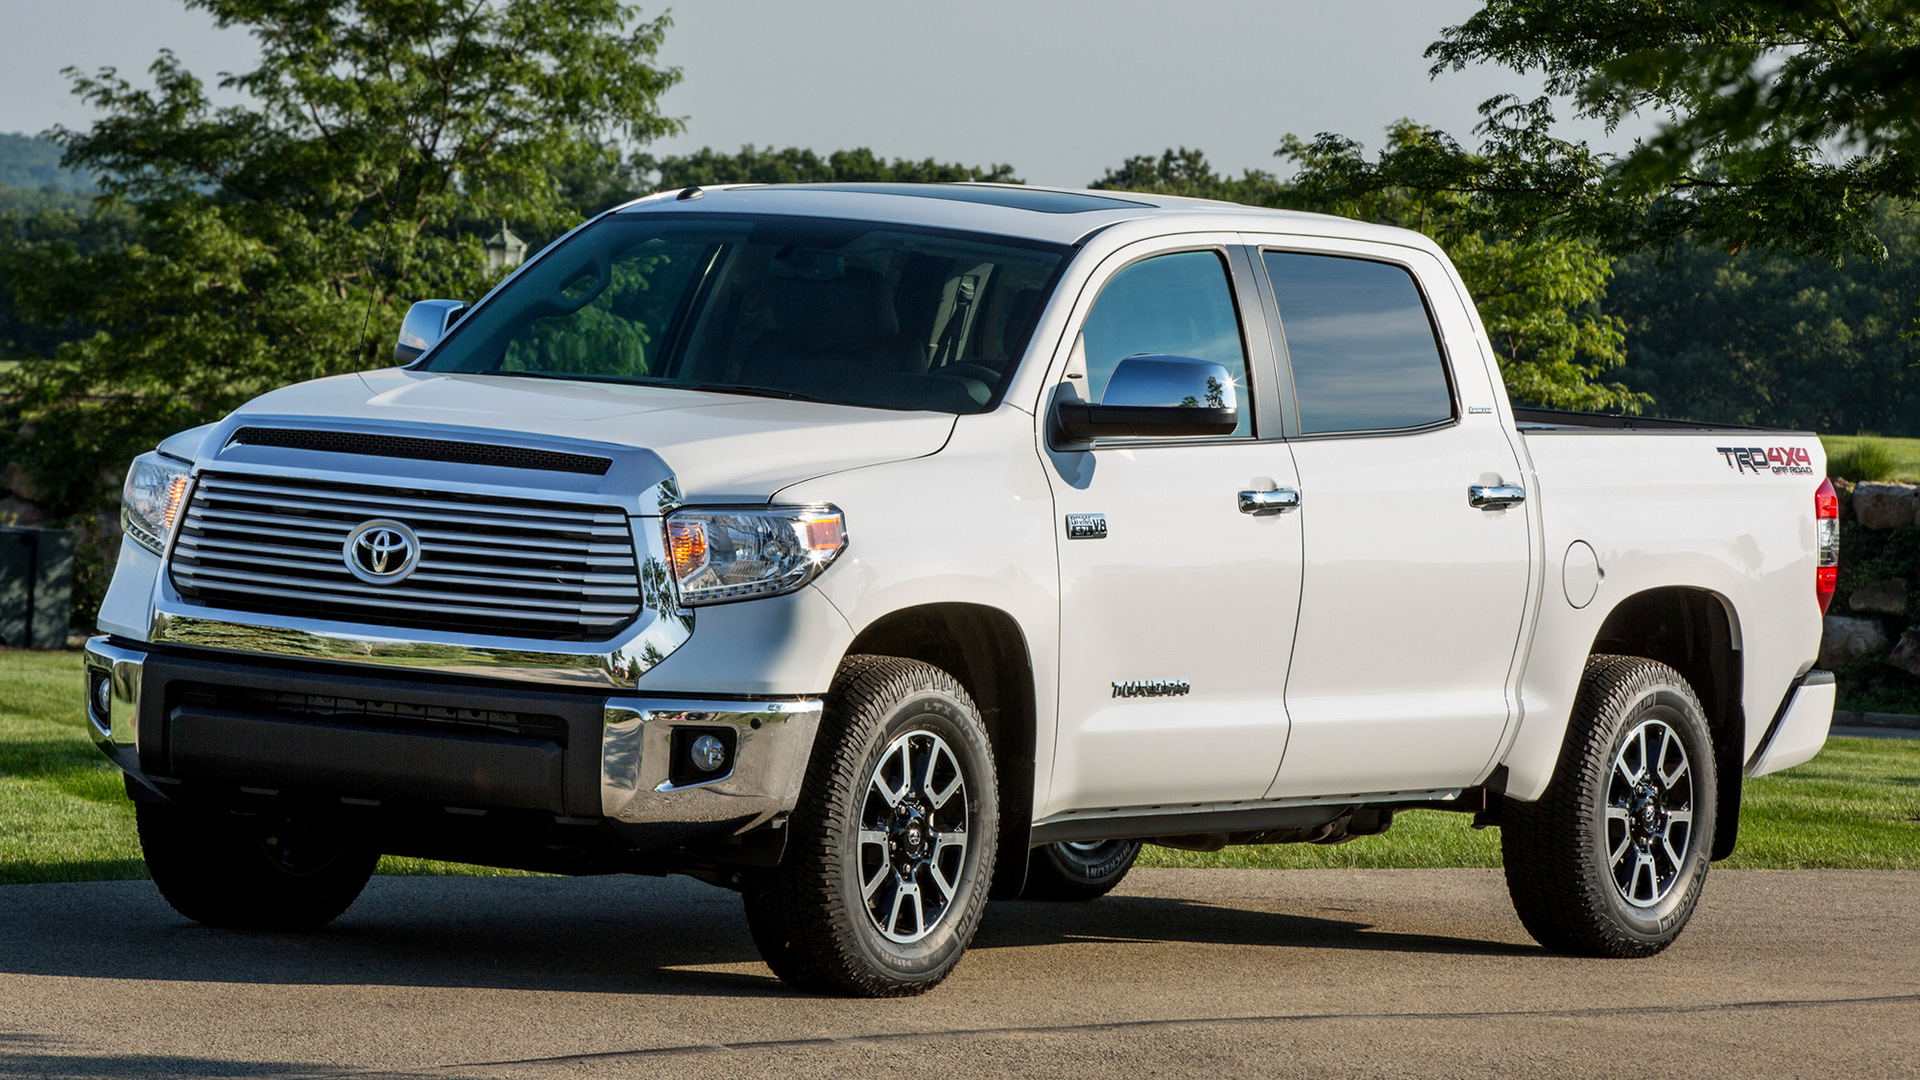 2013 Trd Toyota Tundra Crewmax Limited Wallpapers And Hd